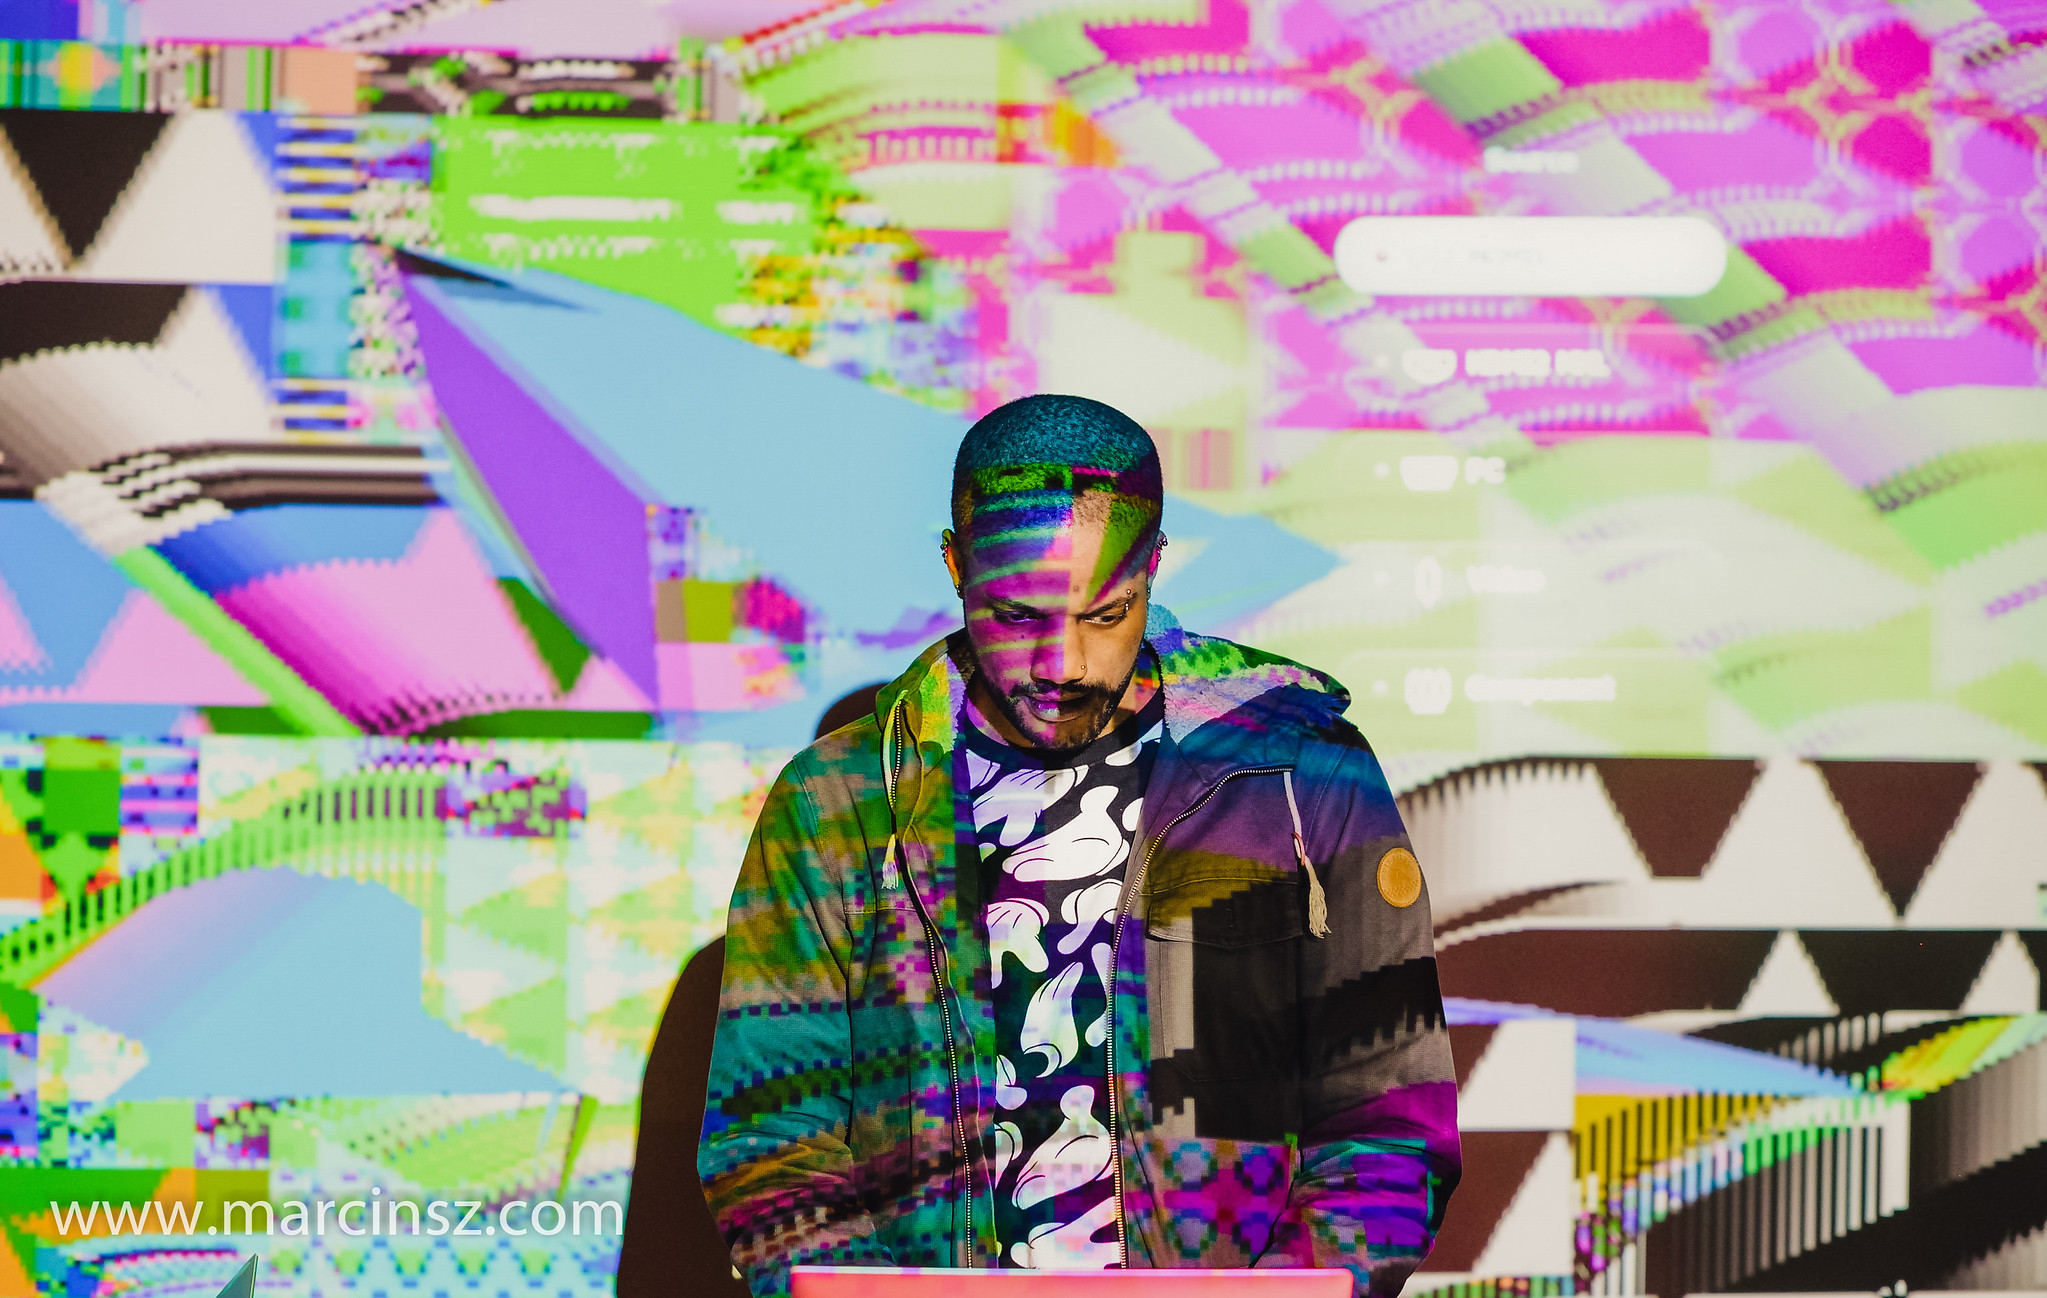 Antonio Roberts, Algorave for Mediafest, Vivid Projects October 2018